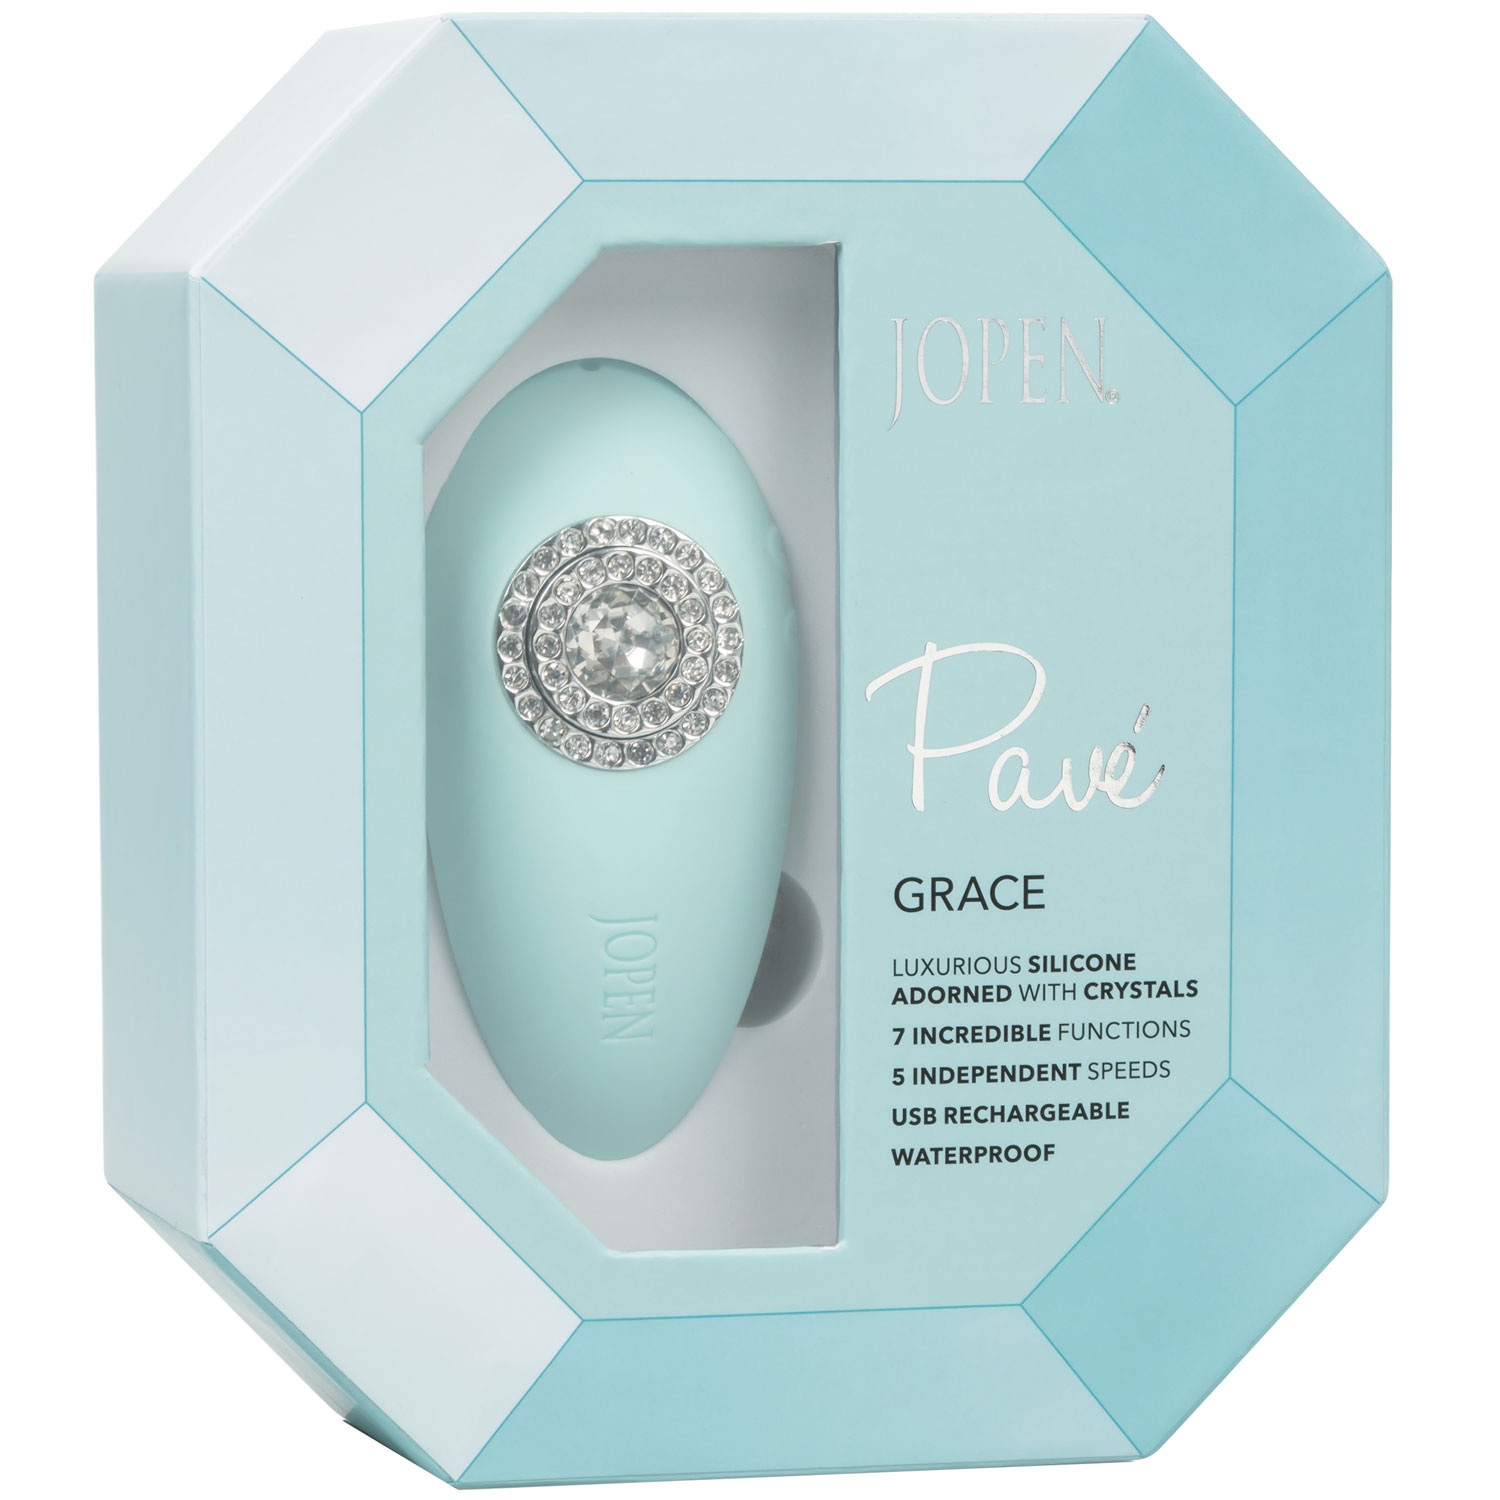 Pave Grace Rechargeable Waterproof Silicone Mini Massager - Package